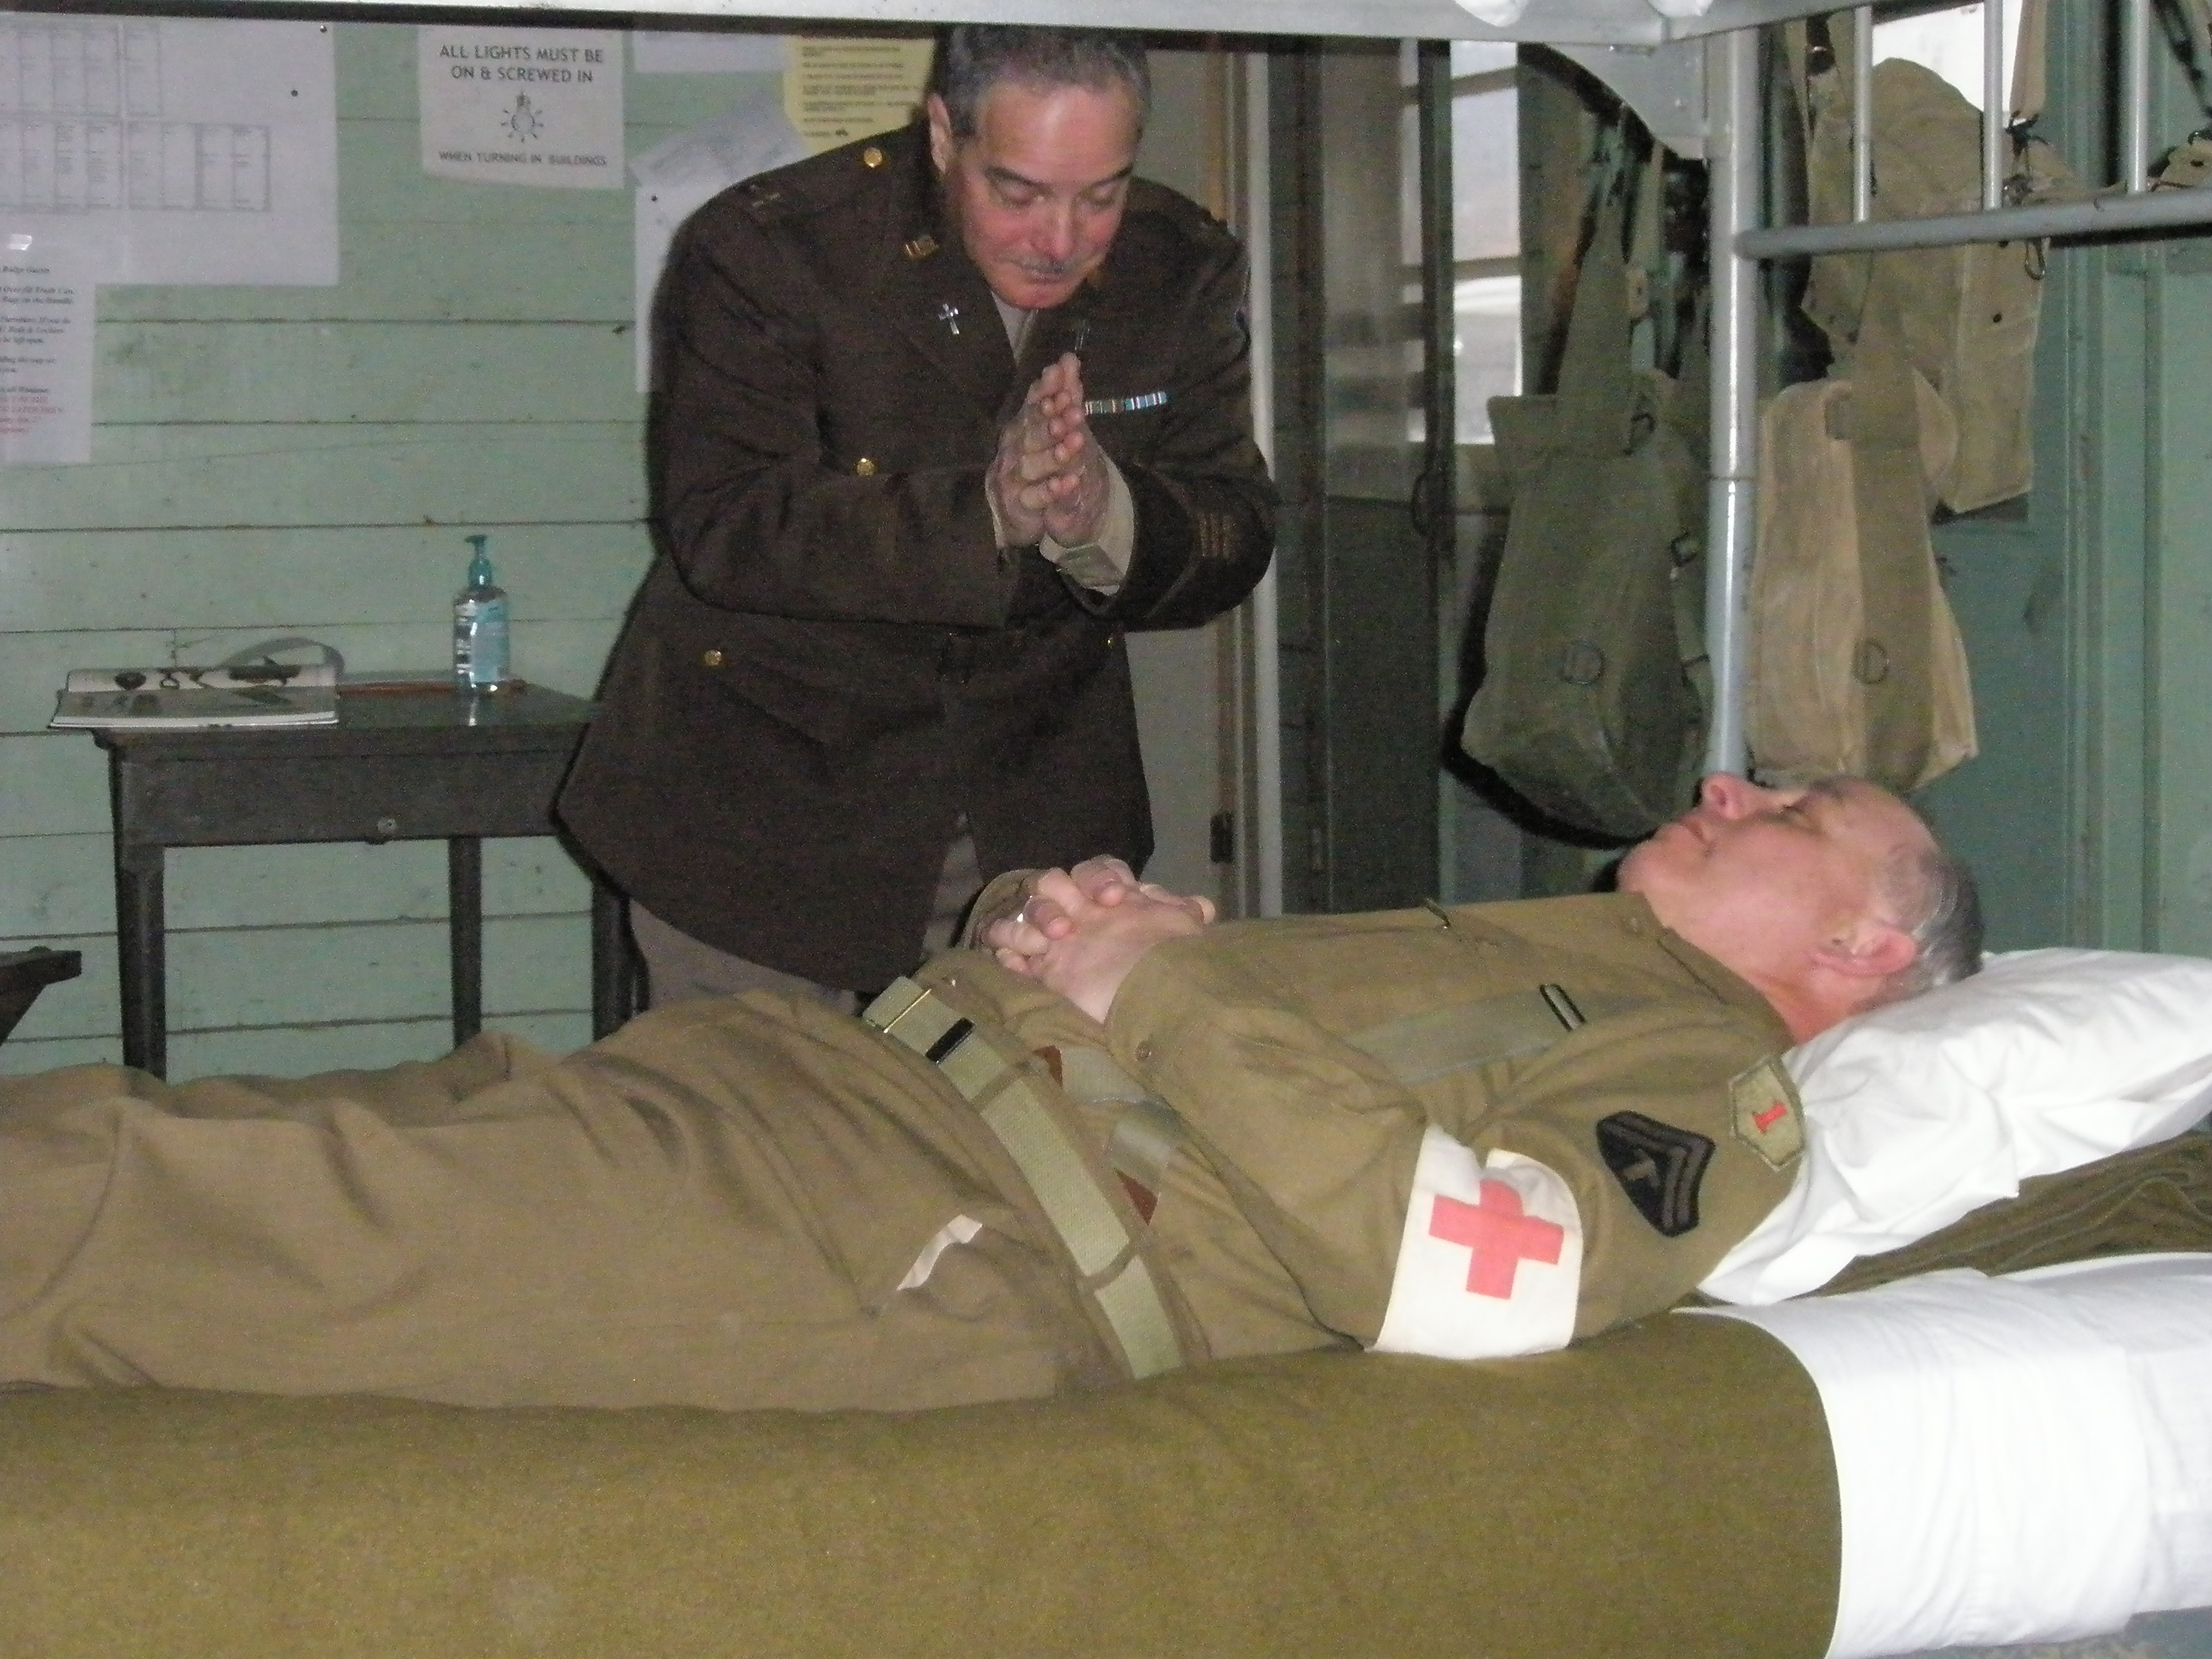 Chaplain Russ Kirby attends to Medic Shope